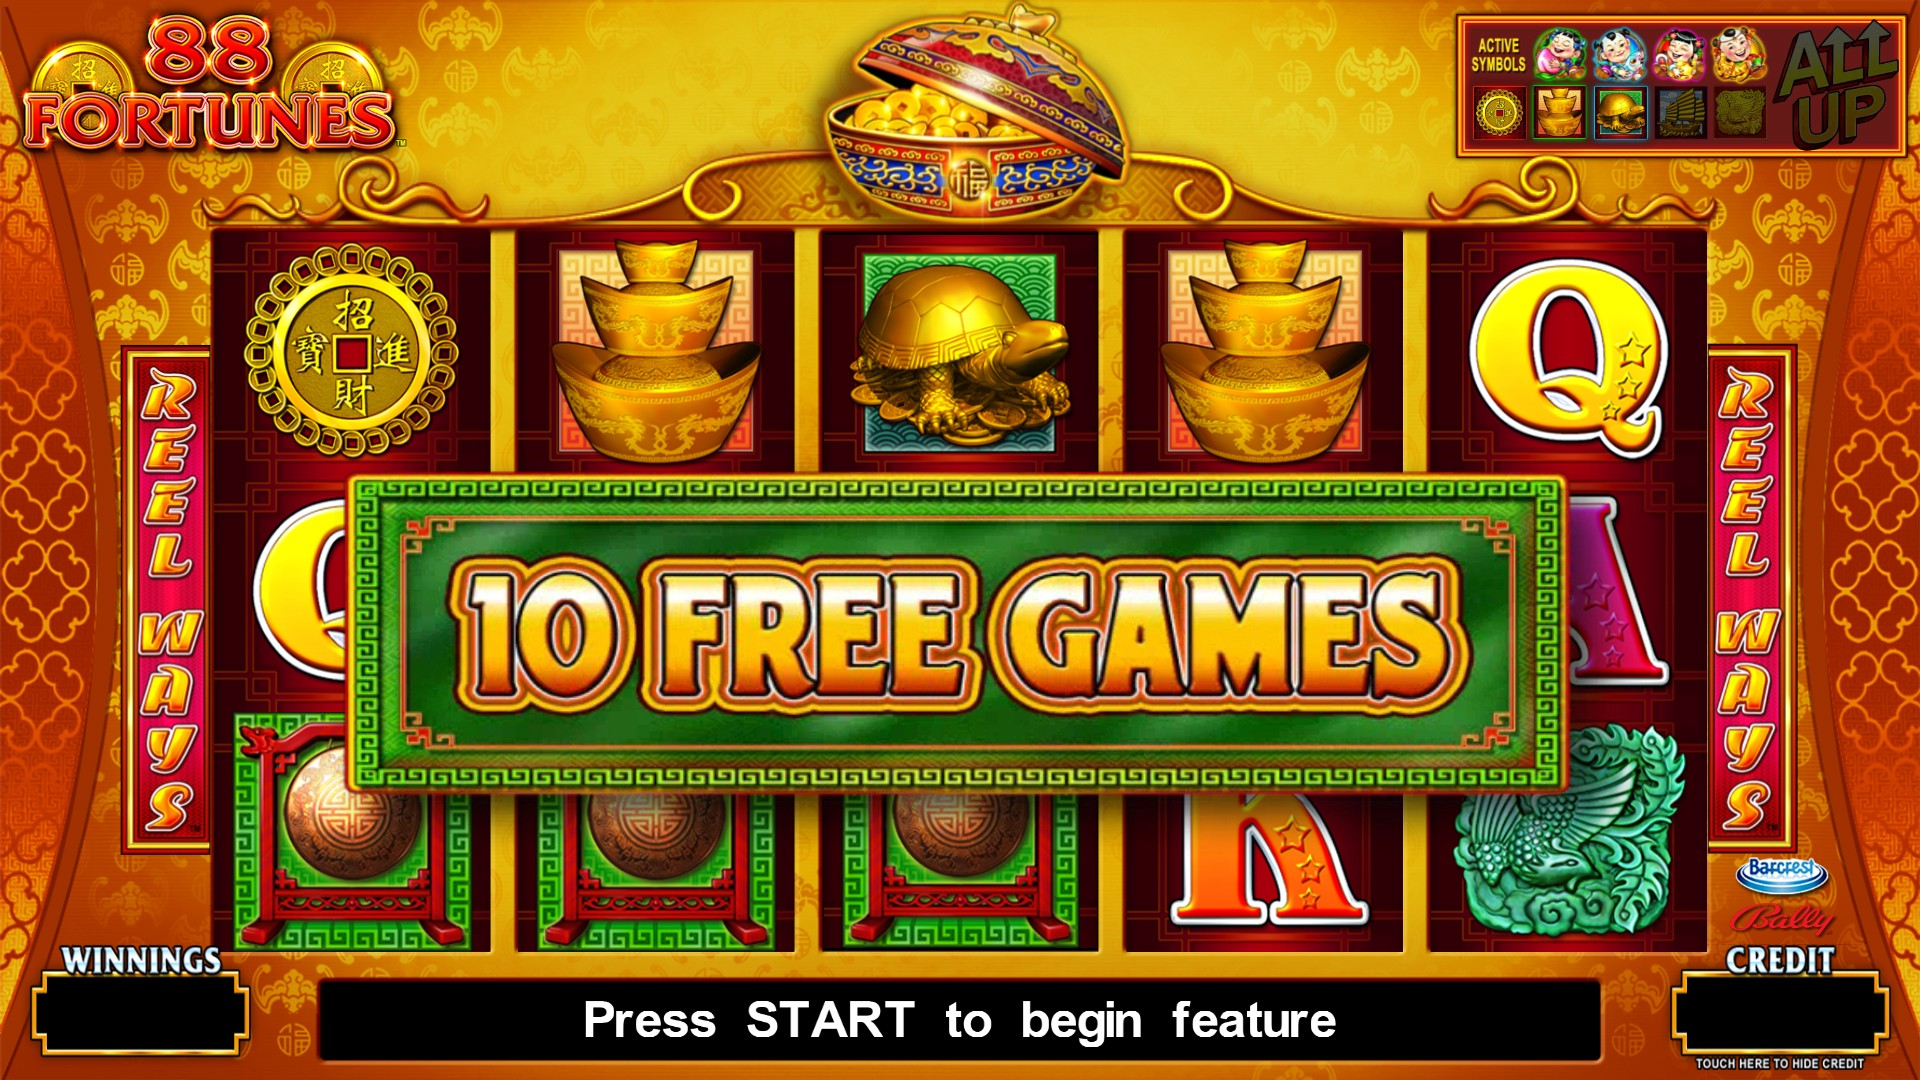 Join to get up to 30 Free Spins No Deposit! Then top up £10 for % Slots Bonus (max £) + 30 Free Spins.Play 's of UK Online Slots.T&Cs apply.